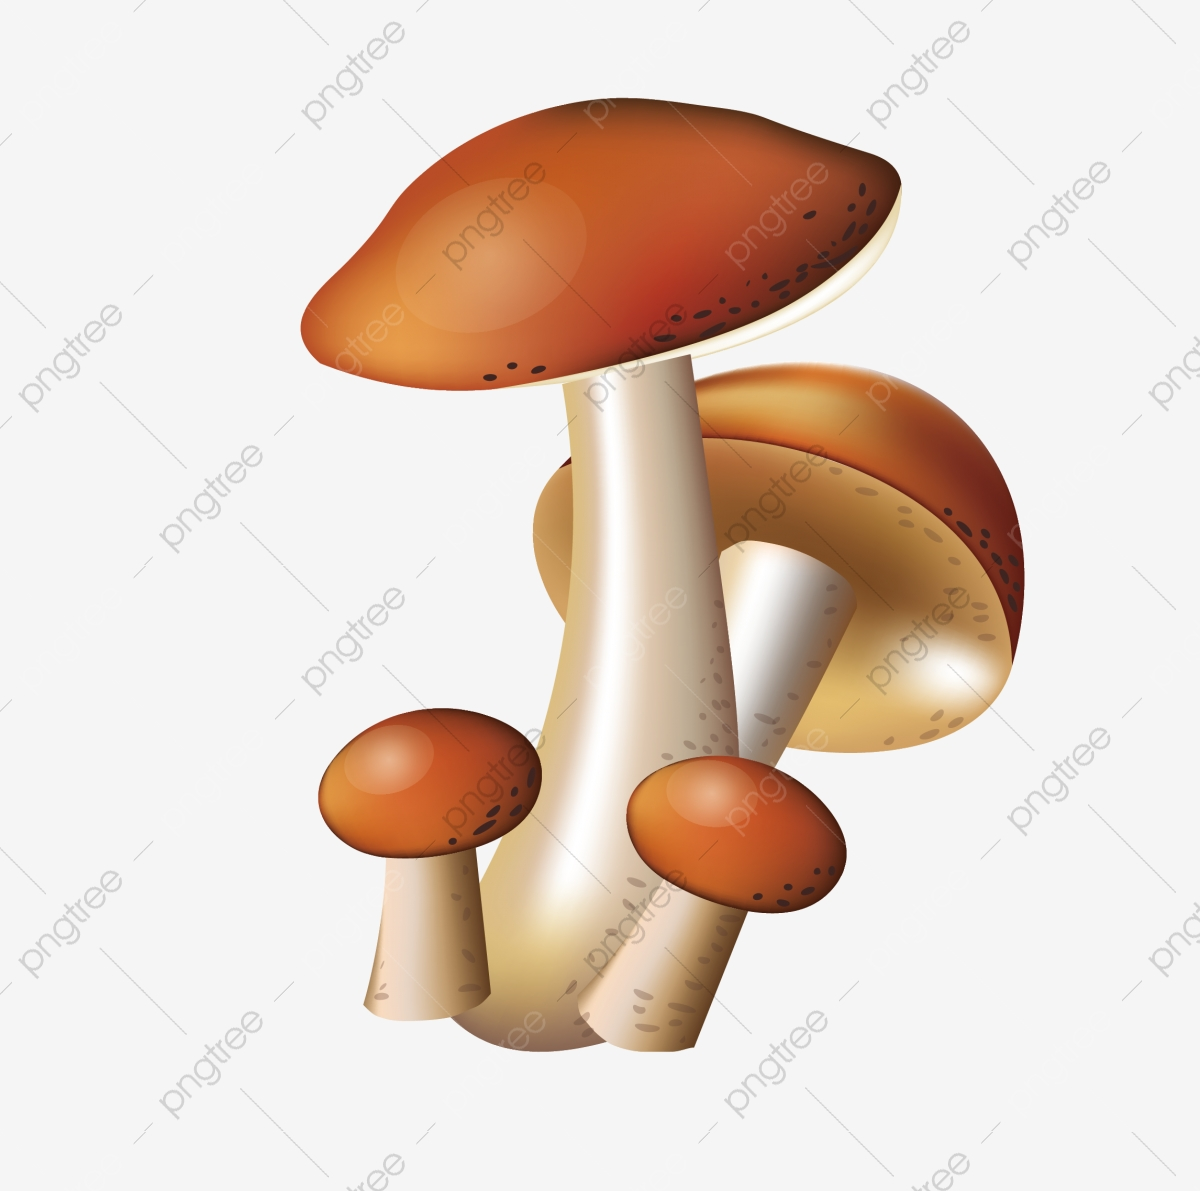 Hd Mushroom Mushroom Mushroom Clipart Mushroom Vegetables Png And Vector With Transparent Background For Free Download 700+ vectors, stock photos & psd files. https pngtree com freepng hd mushroom mushroom 2163406 html